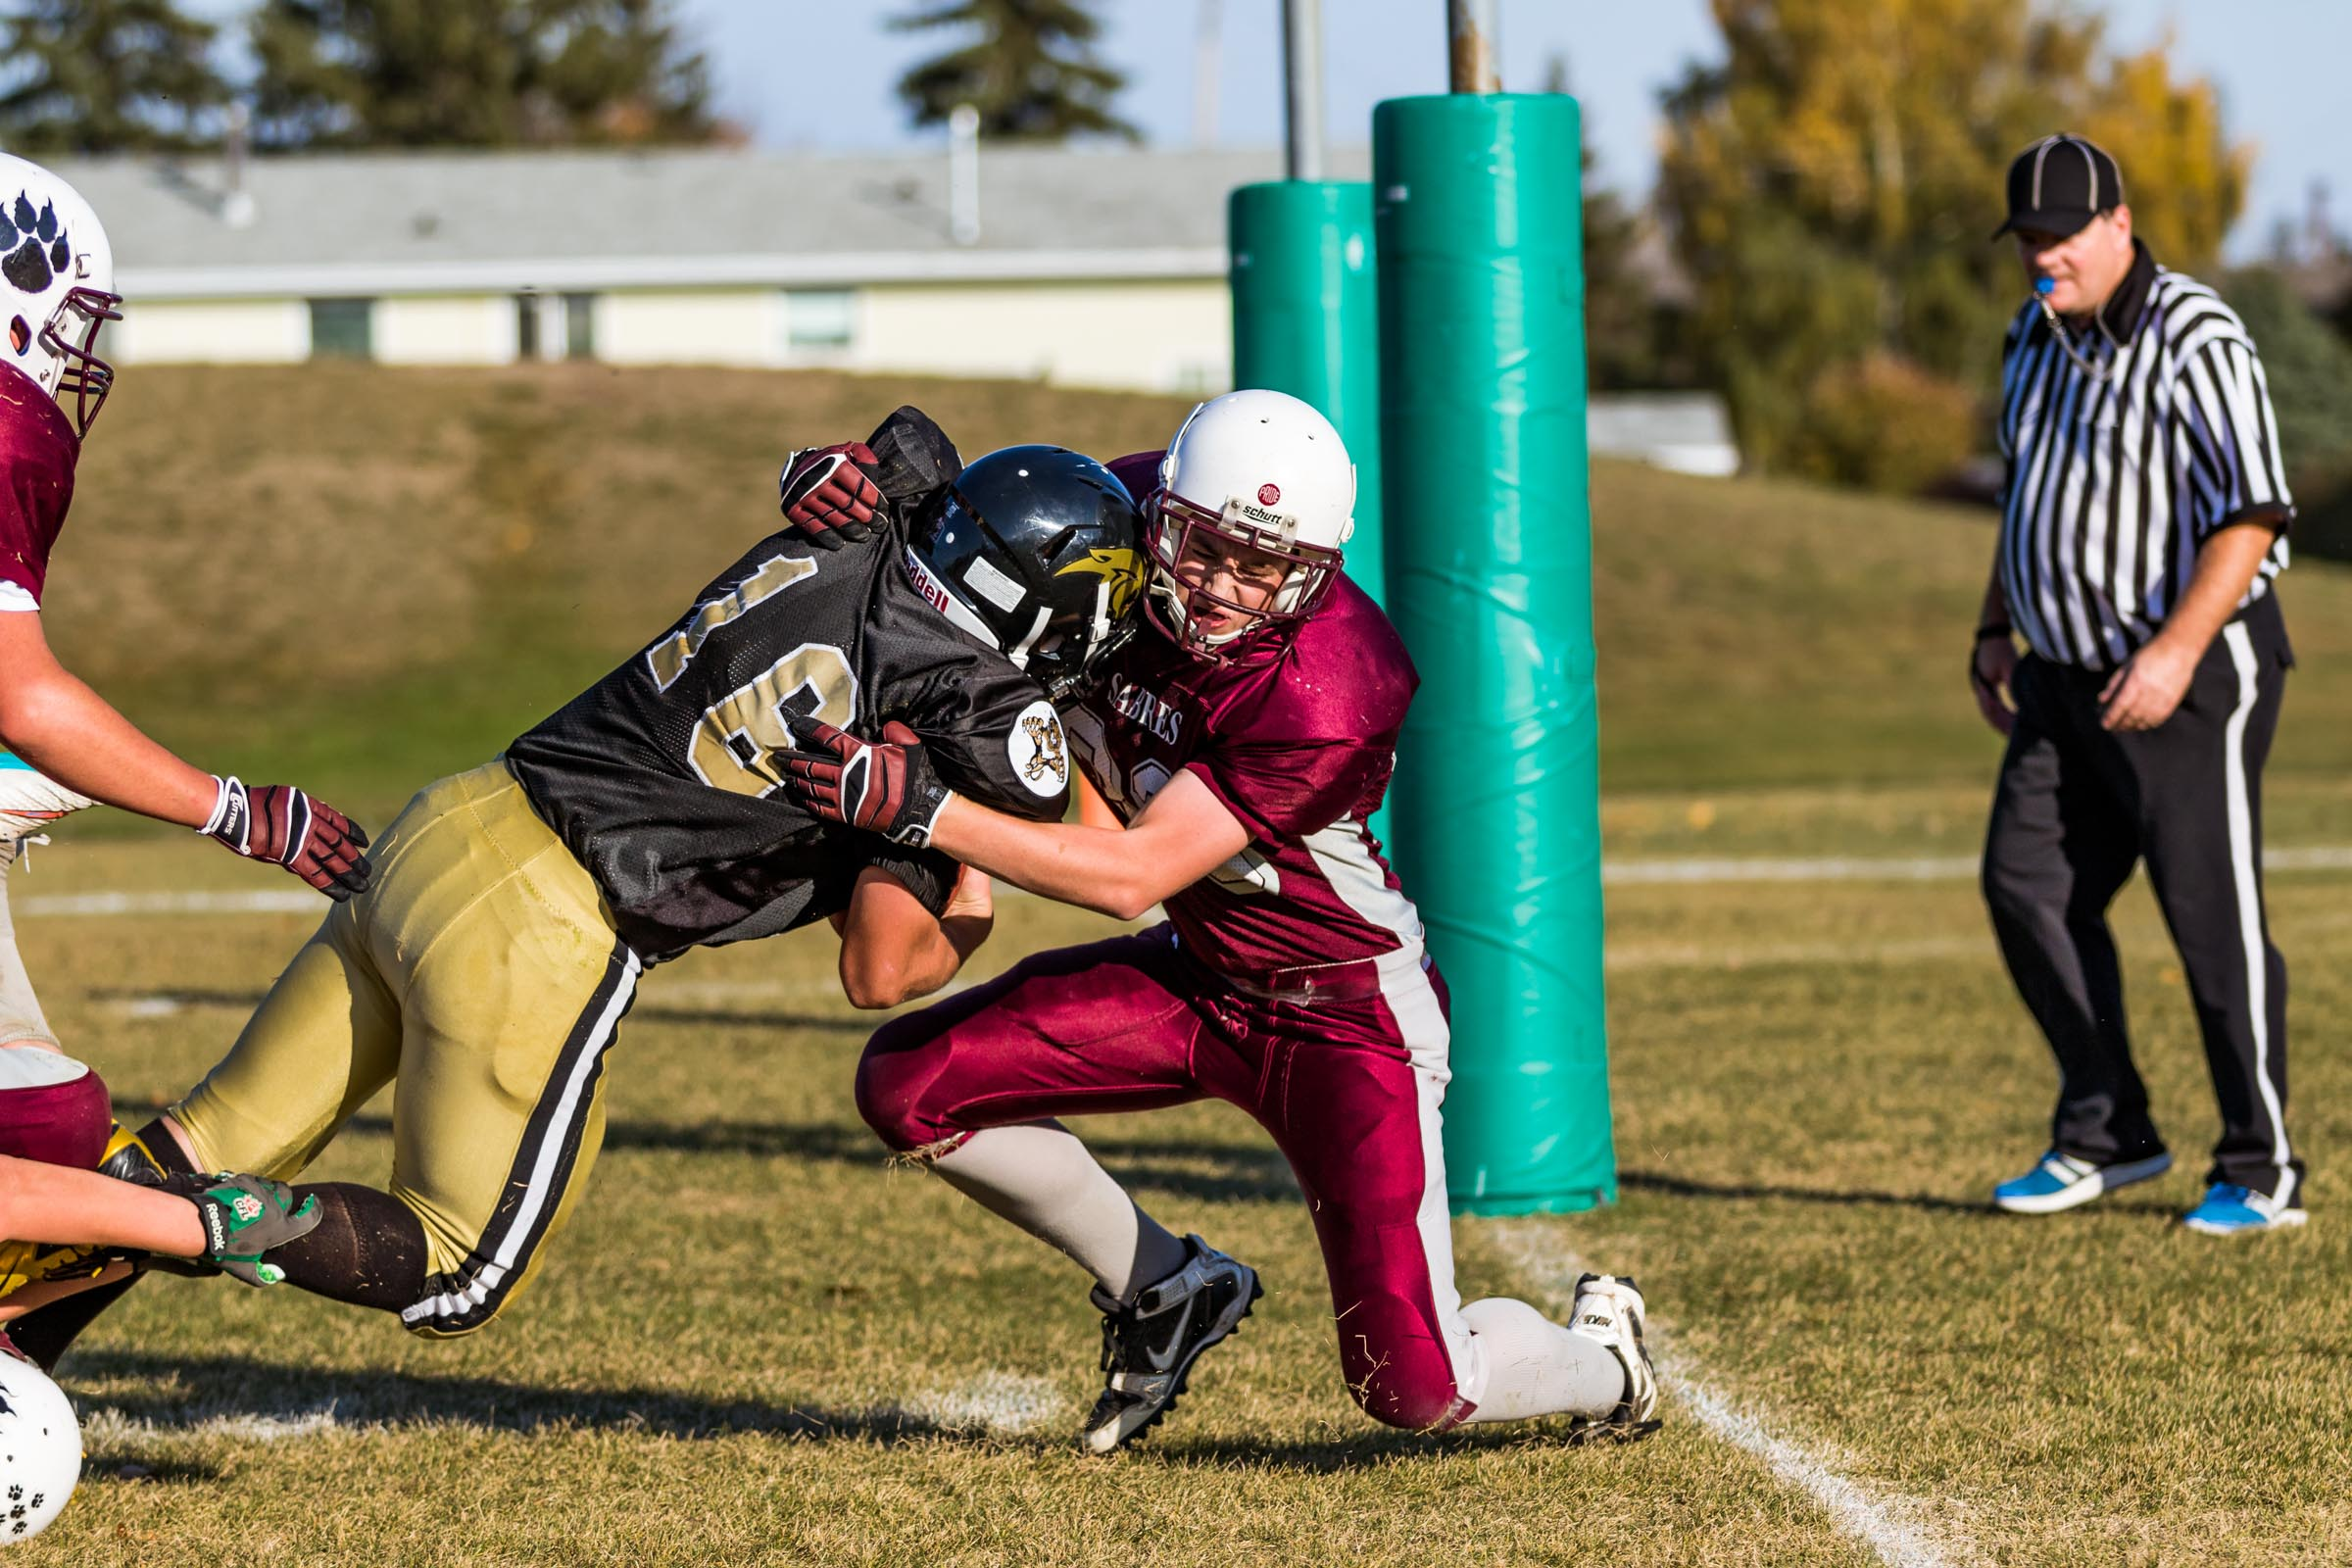 0171_macklinsabres_haguepanthers_football_September 30, 2016.jpg